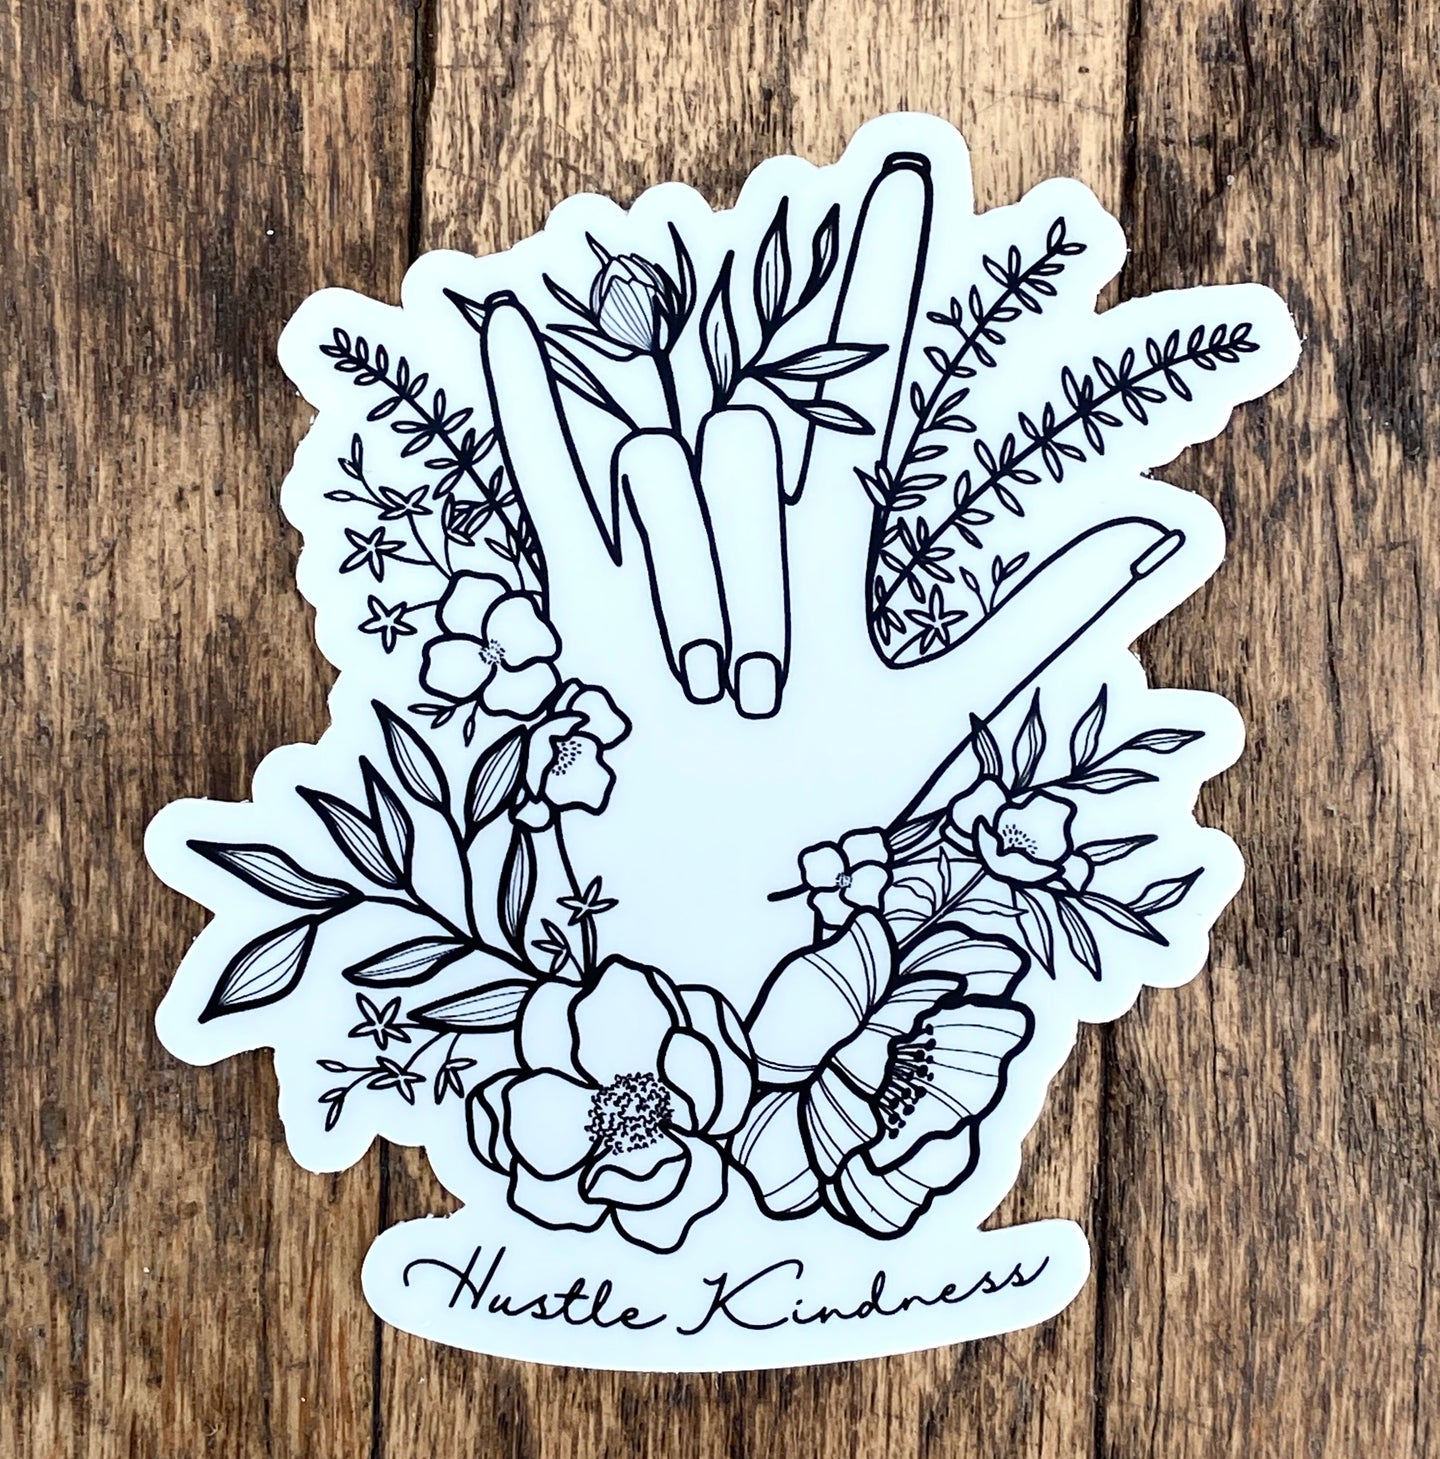 I LOVE YOU (ASL) Hustle Kindness Sticker